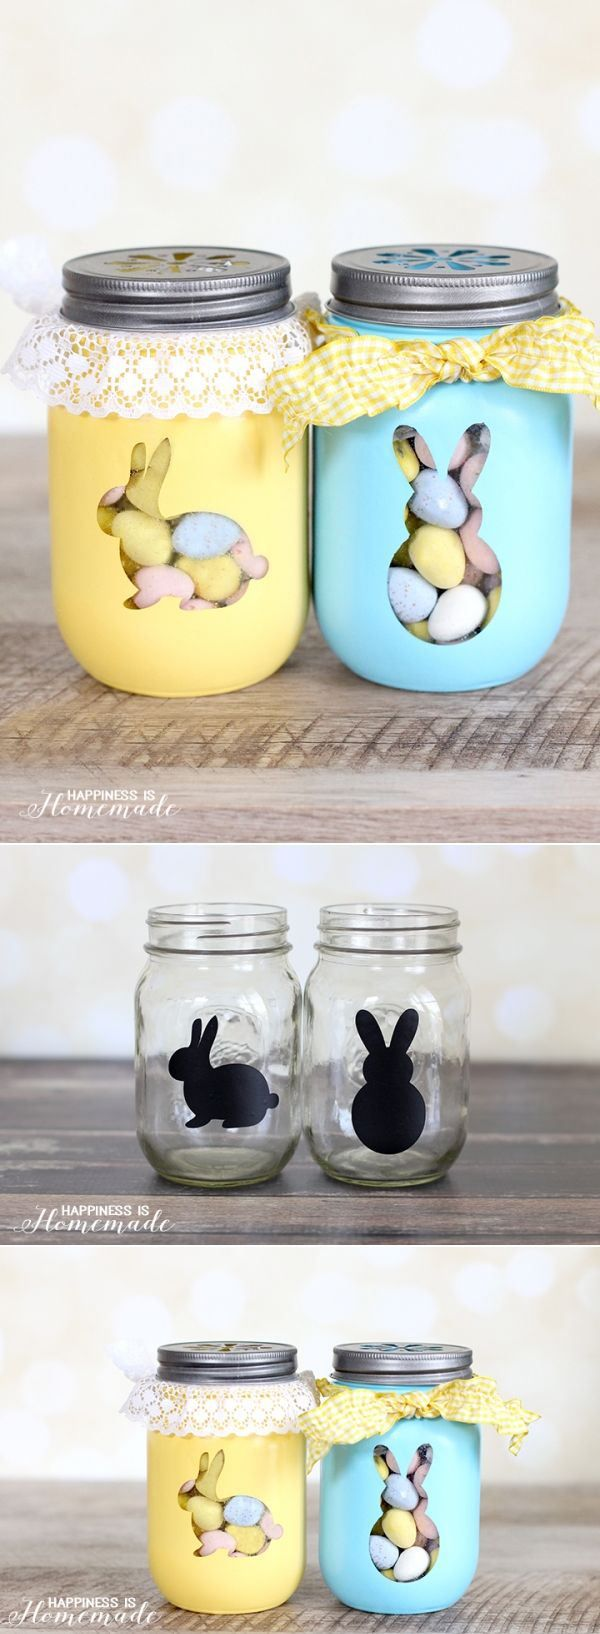 DIY Ester Bunny Treat Jars